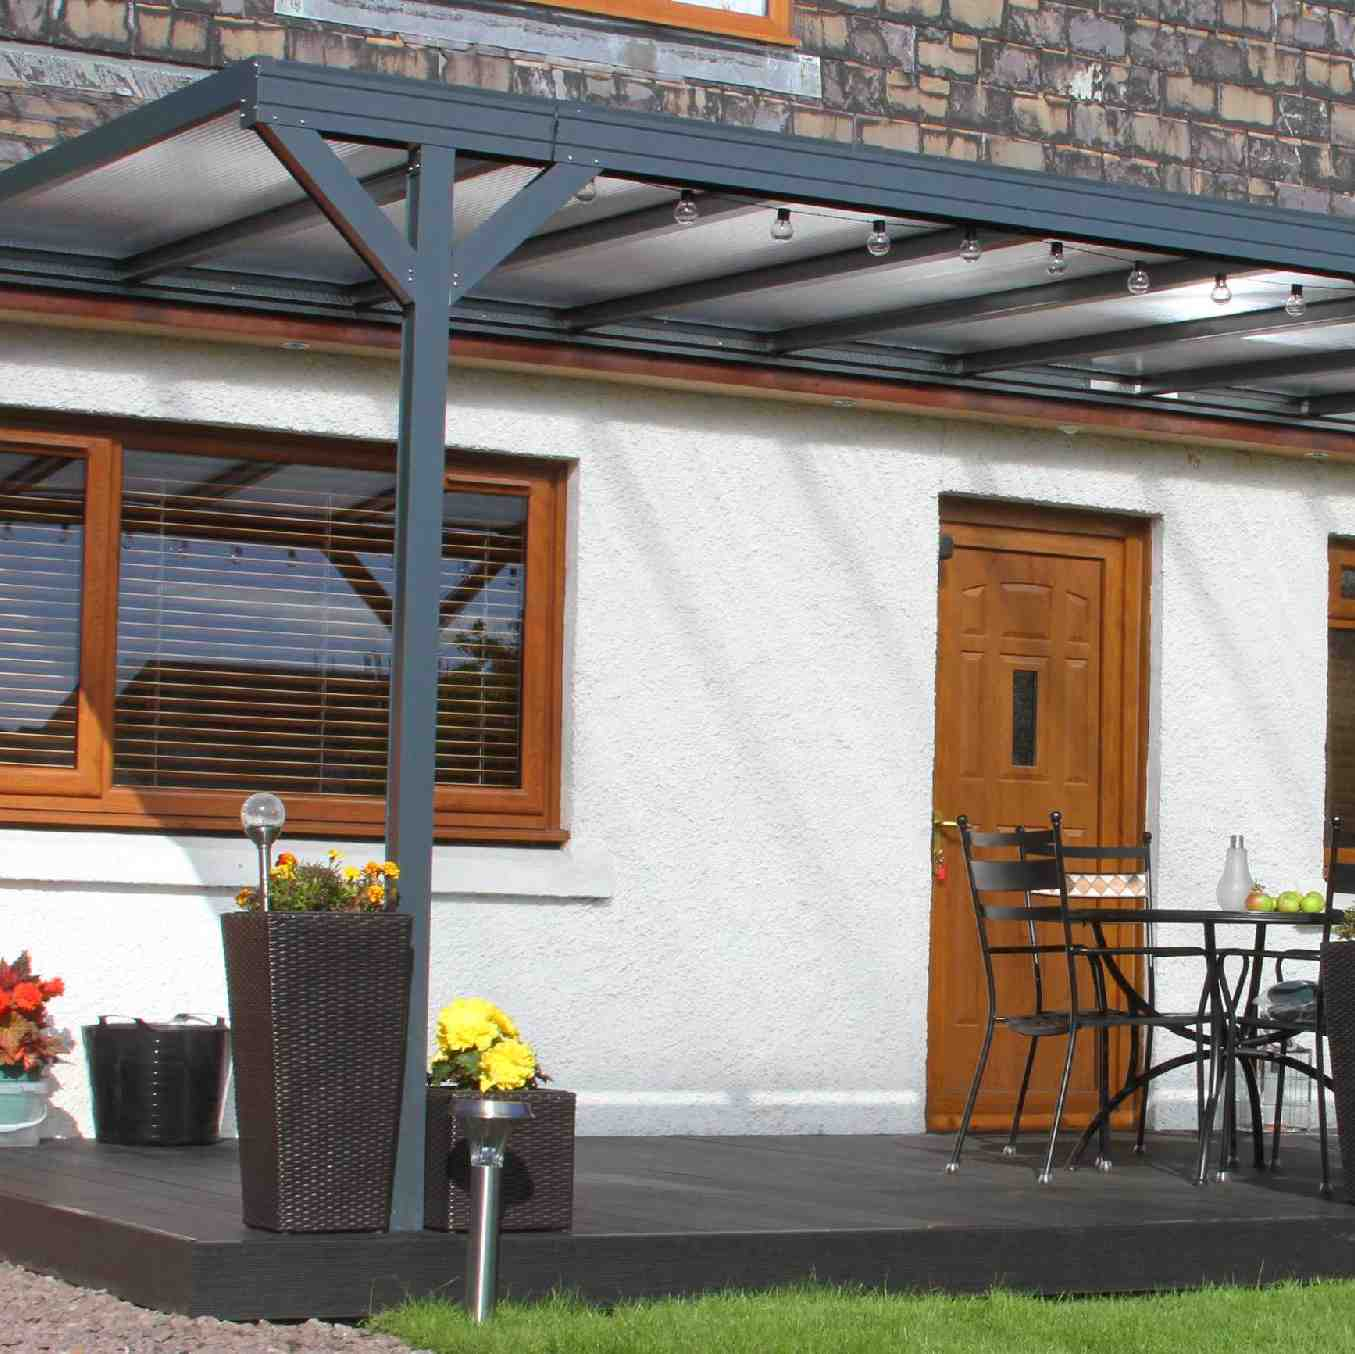 Omega Verandah, Anthracite Grey, 6mm Glass Clear Plate Polycarbonate Glazing - 7.7m (W) x 3.5m (P), (4) Supporting Posts